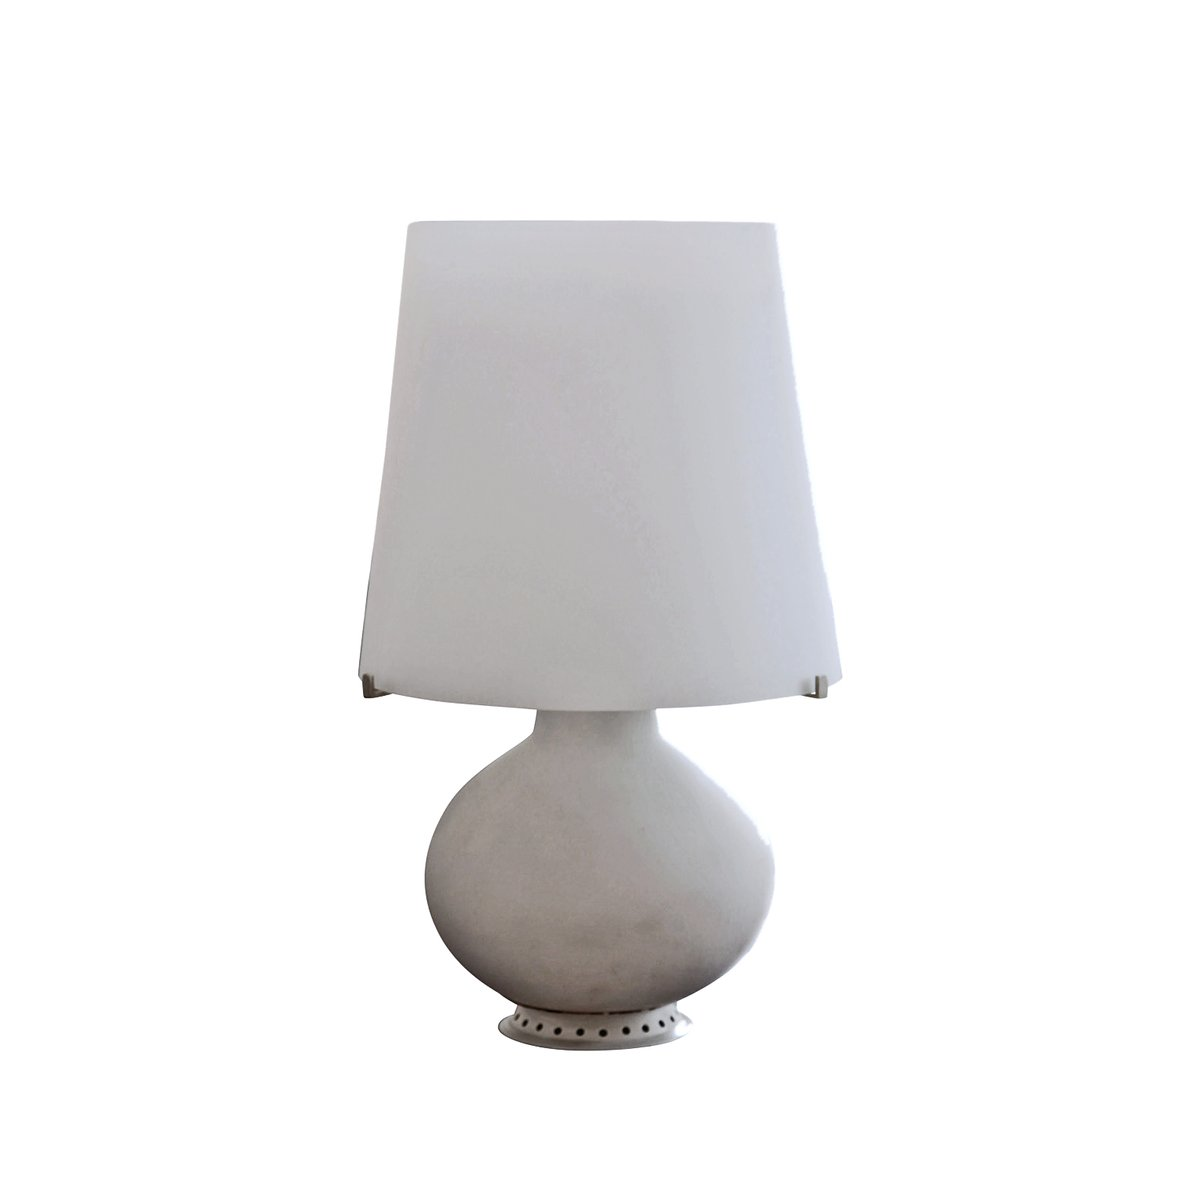 Fontana 1853 Table Lamp by Max Ingrand for Fontana Arte for sale at ...